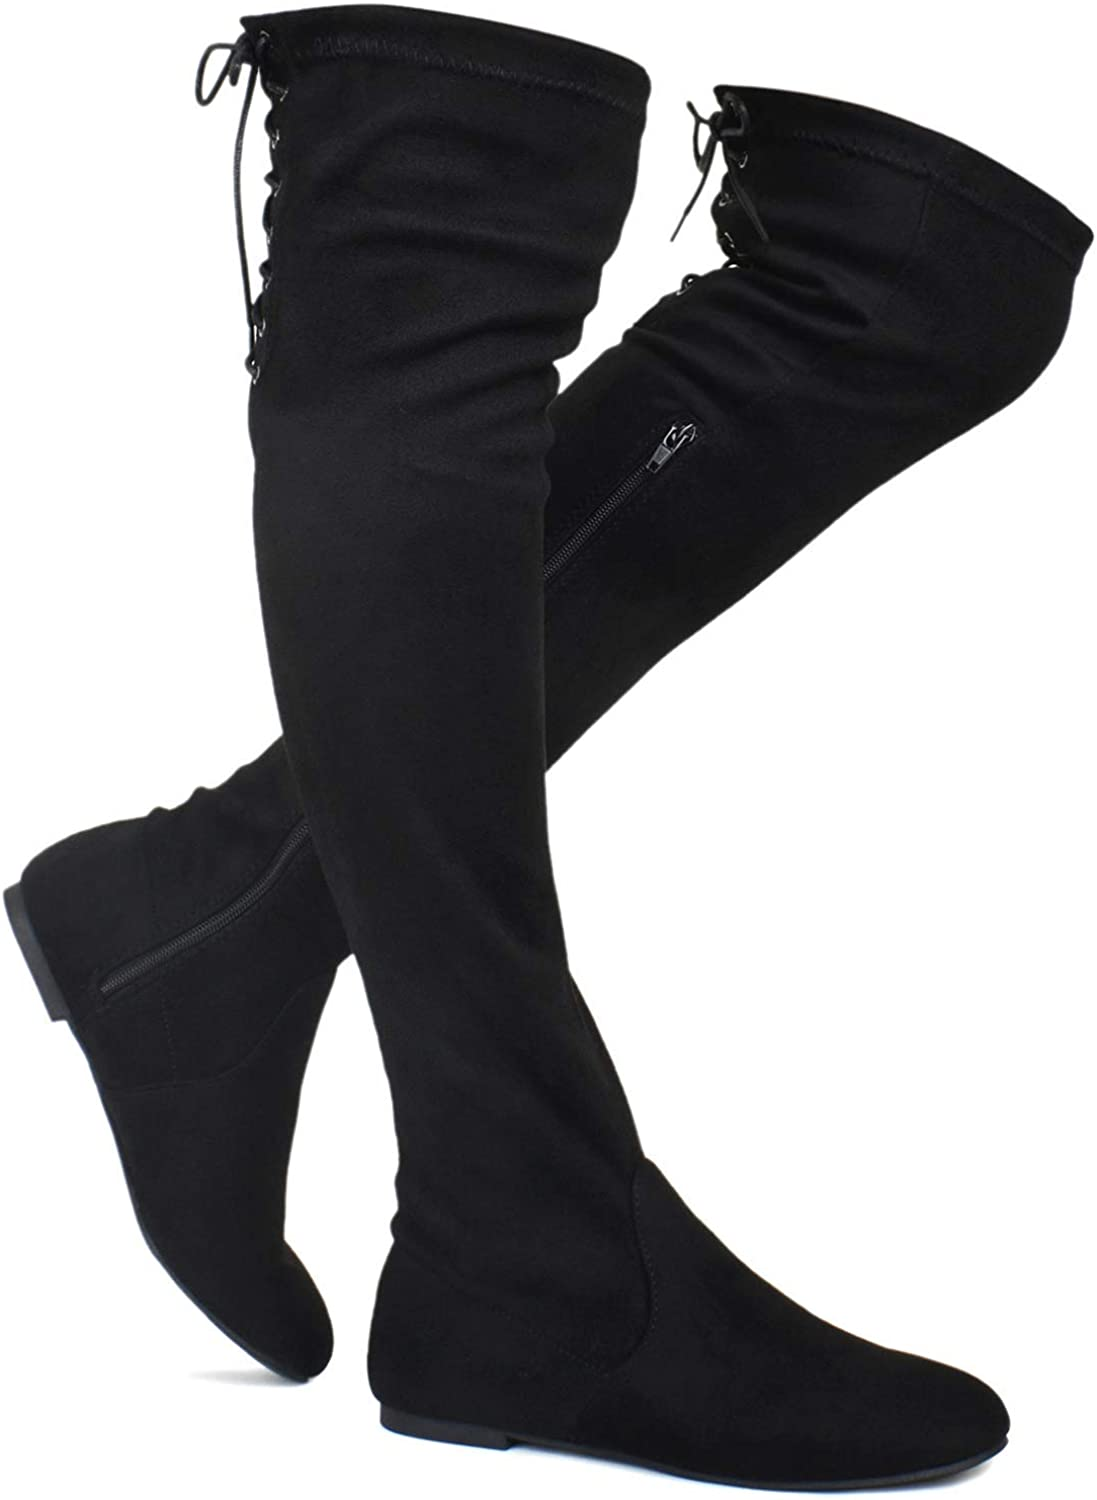 ShoBeautiful Women's Over The Knee Flat Boots Stretchy Back Lace Tie Up Low Heel Winter Thigh High Dress Boots (TM)